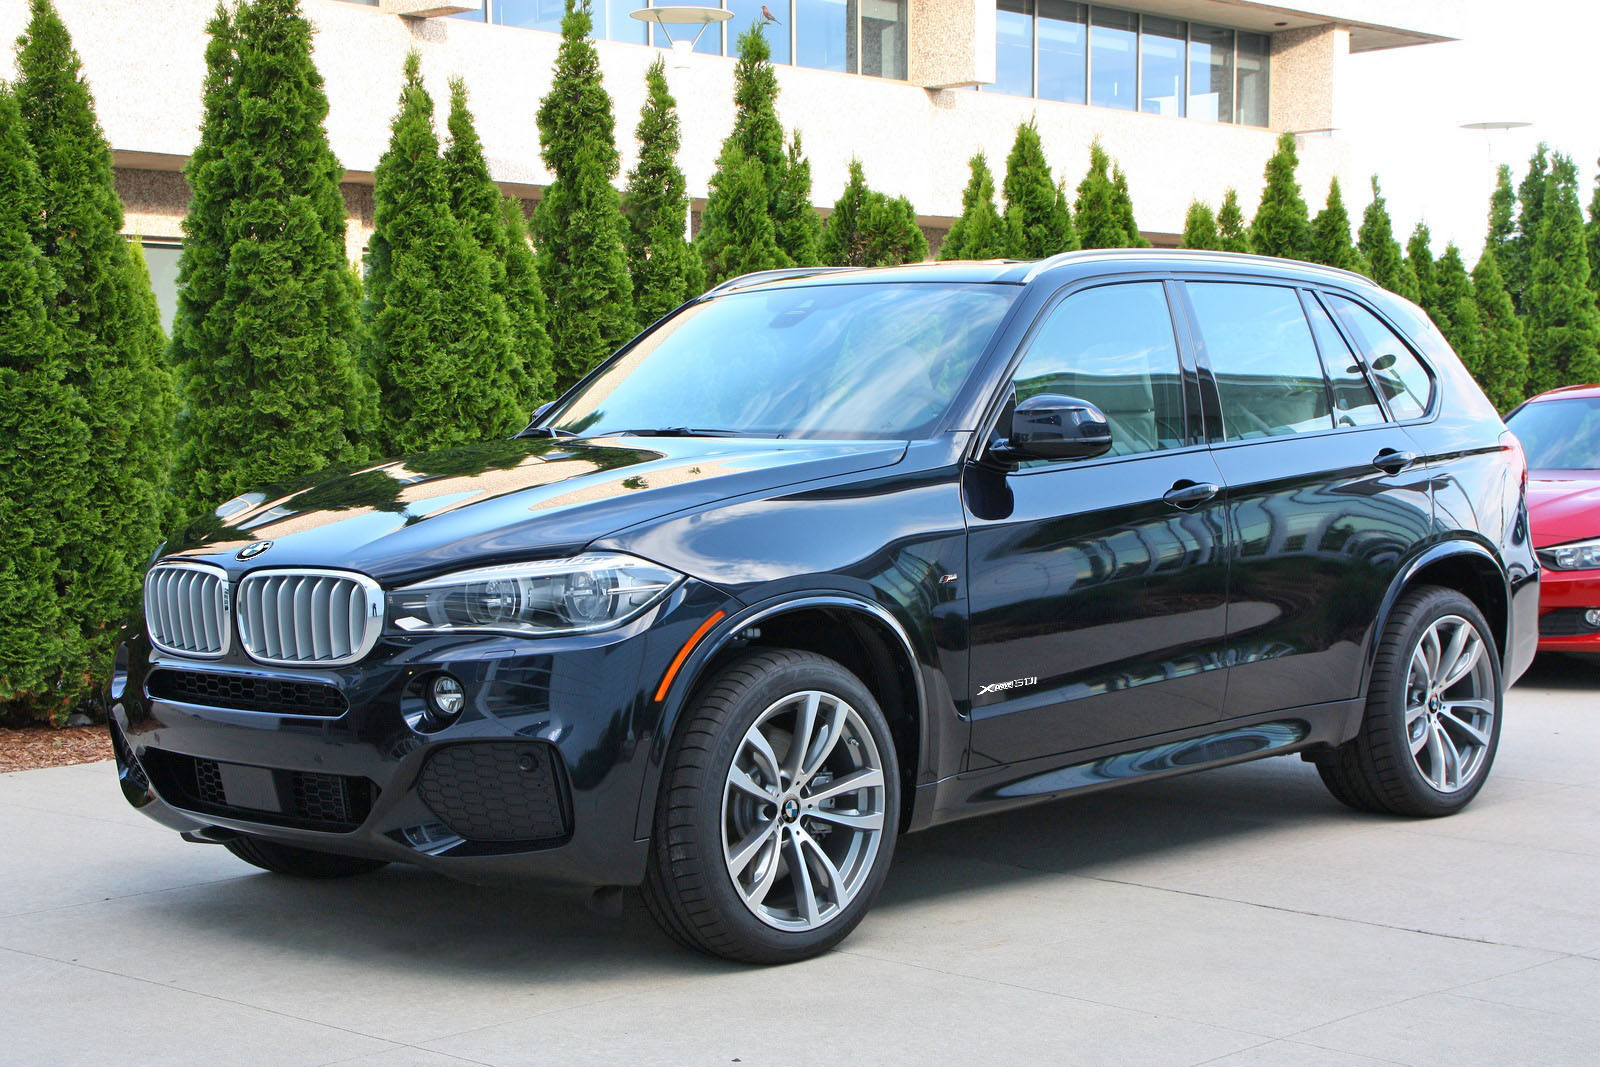 f15 2014 bmw x5 50i m sport uncovered best of car talk. Black Bedroom Furniture Sets. Home Design Ideas